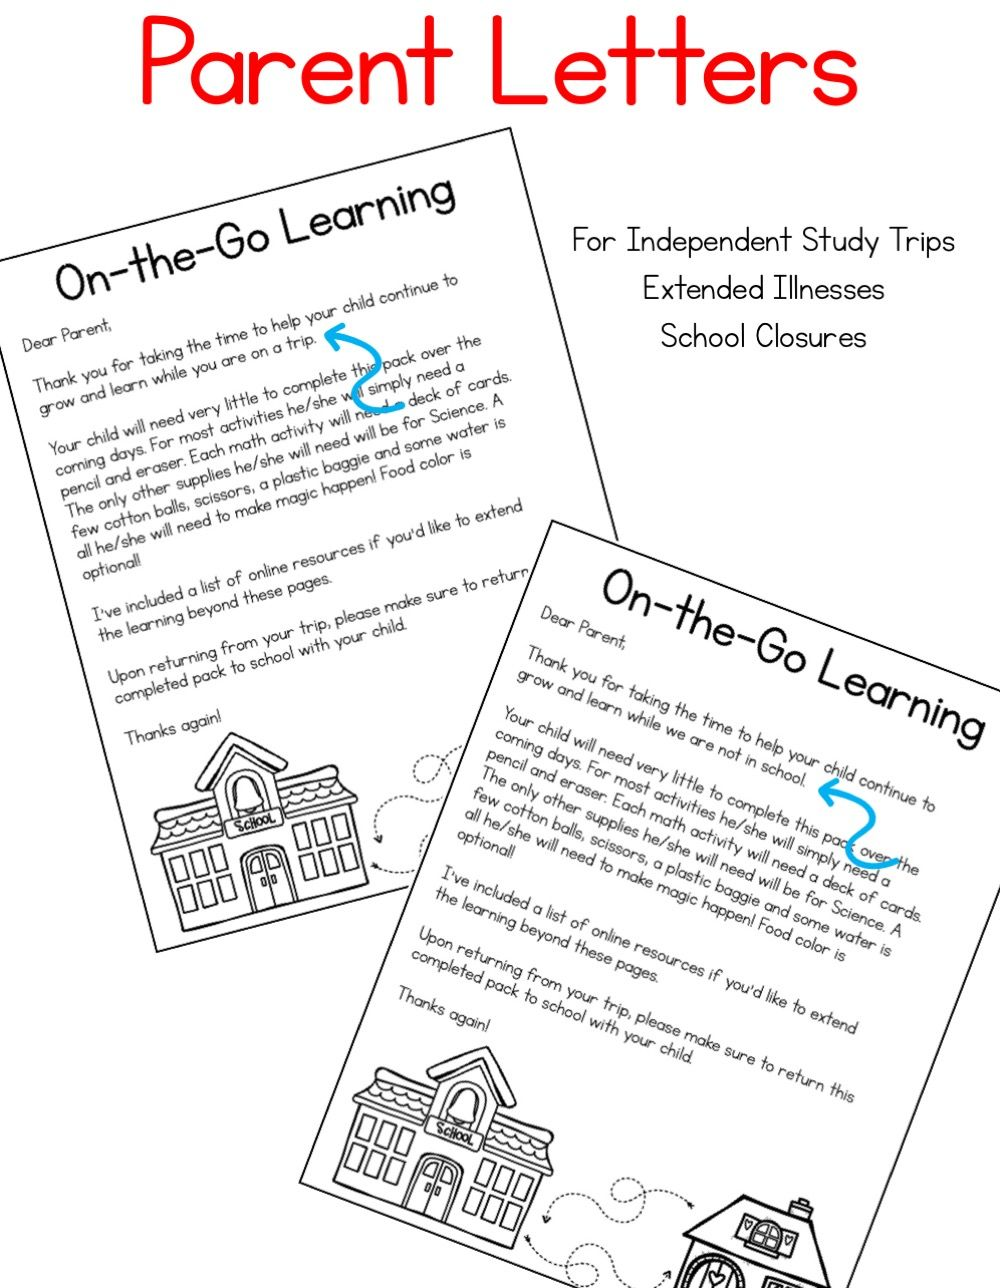 On-the-Go Learning! Curriculum to Use Outside the